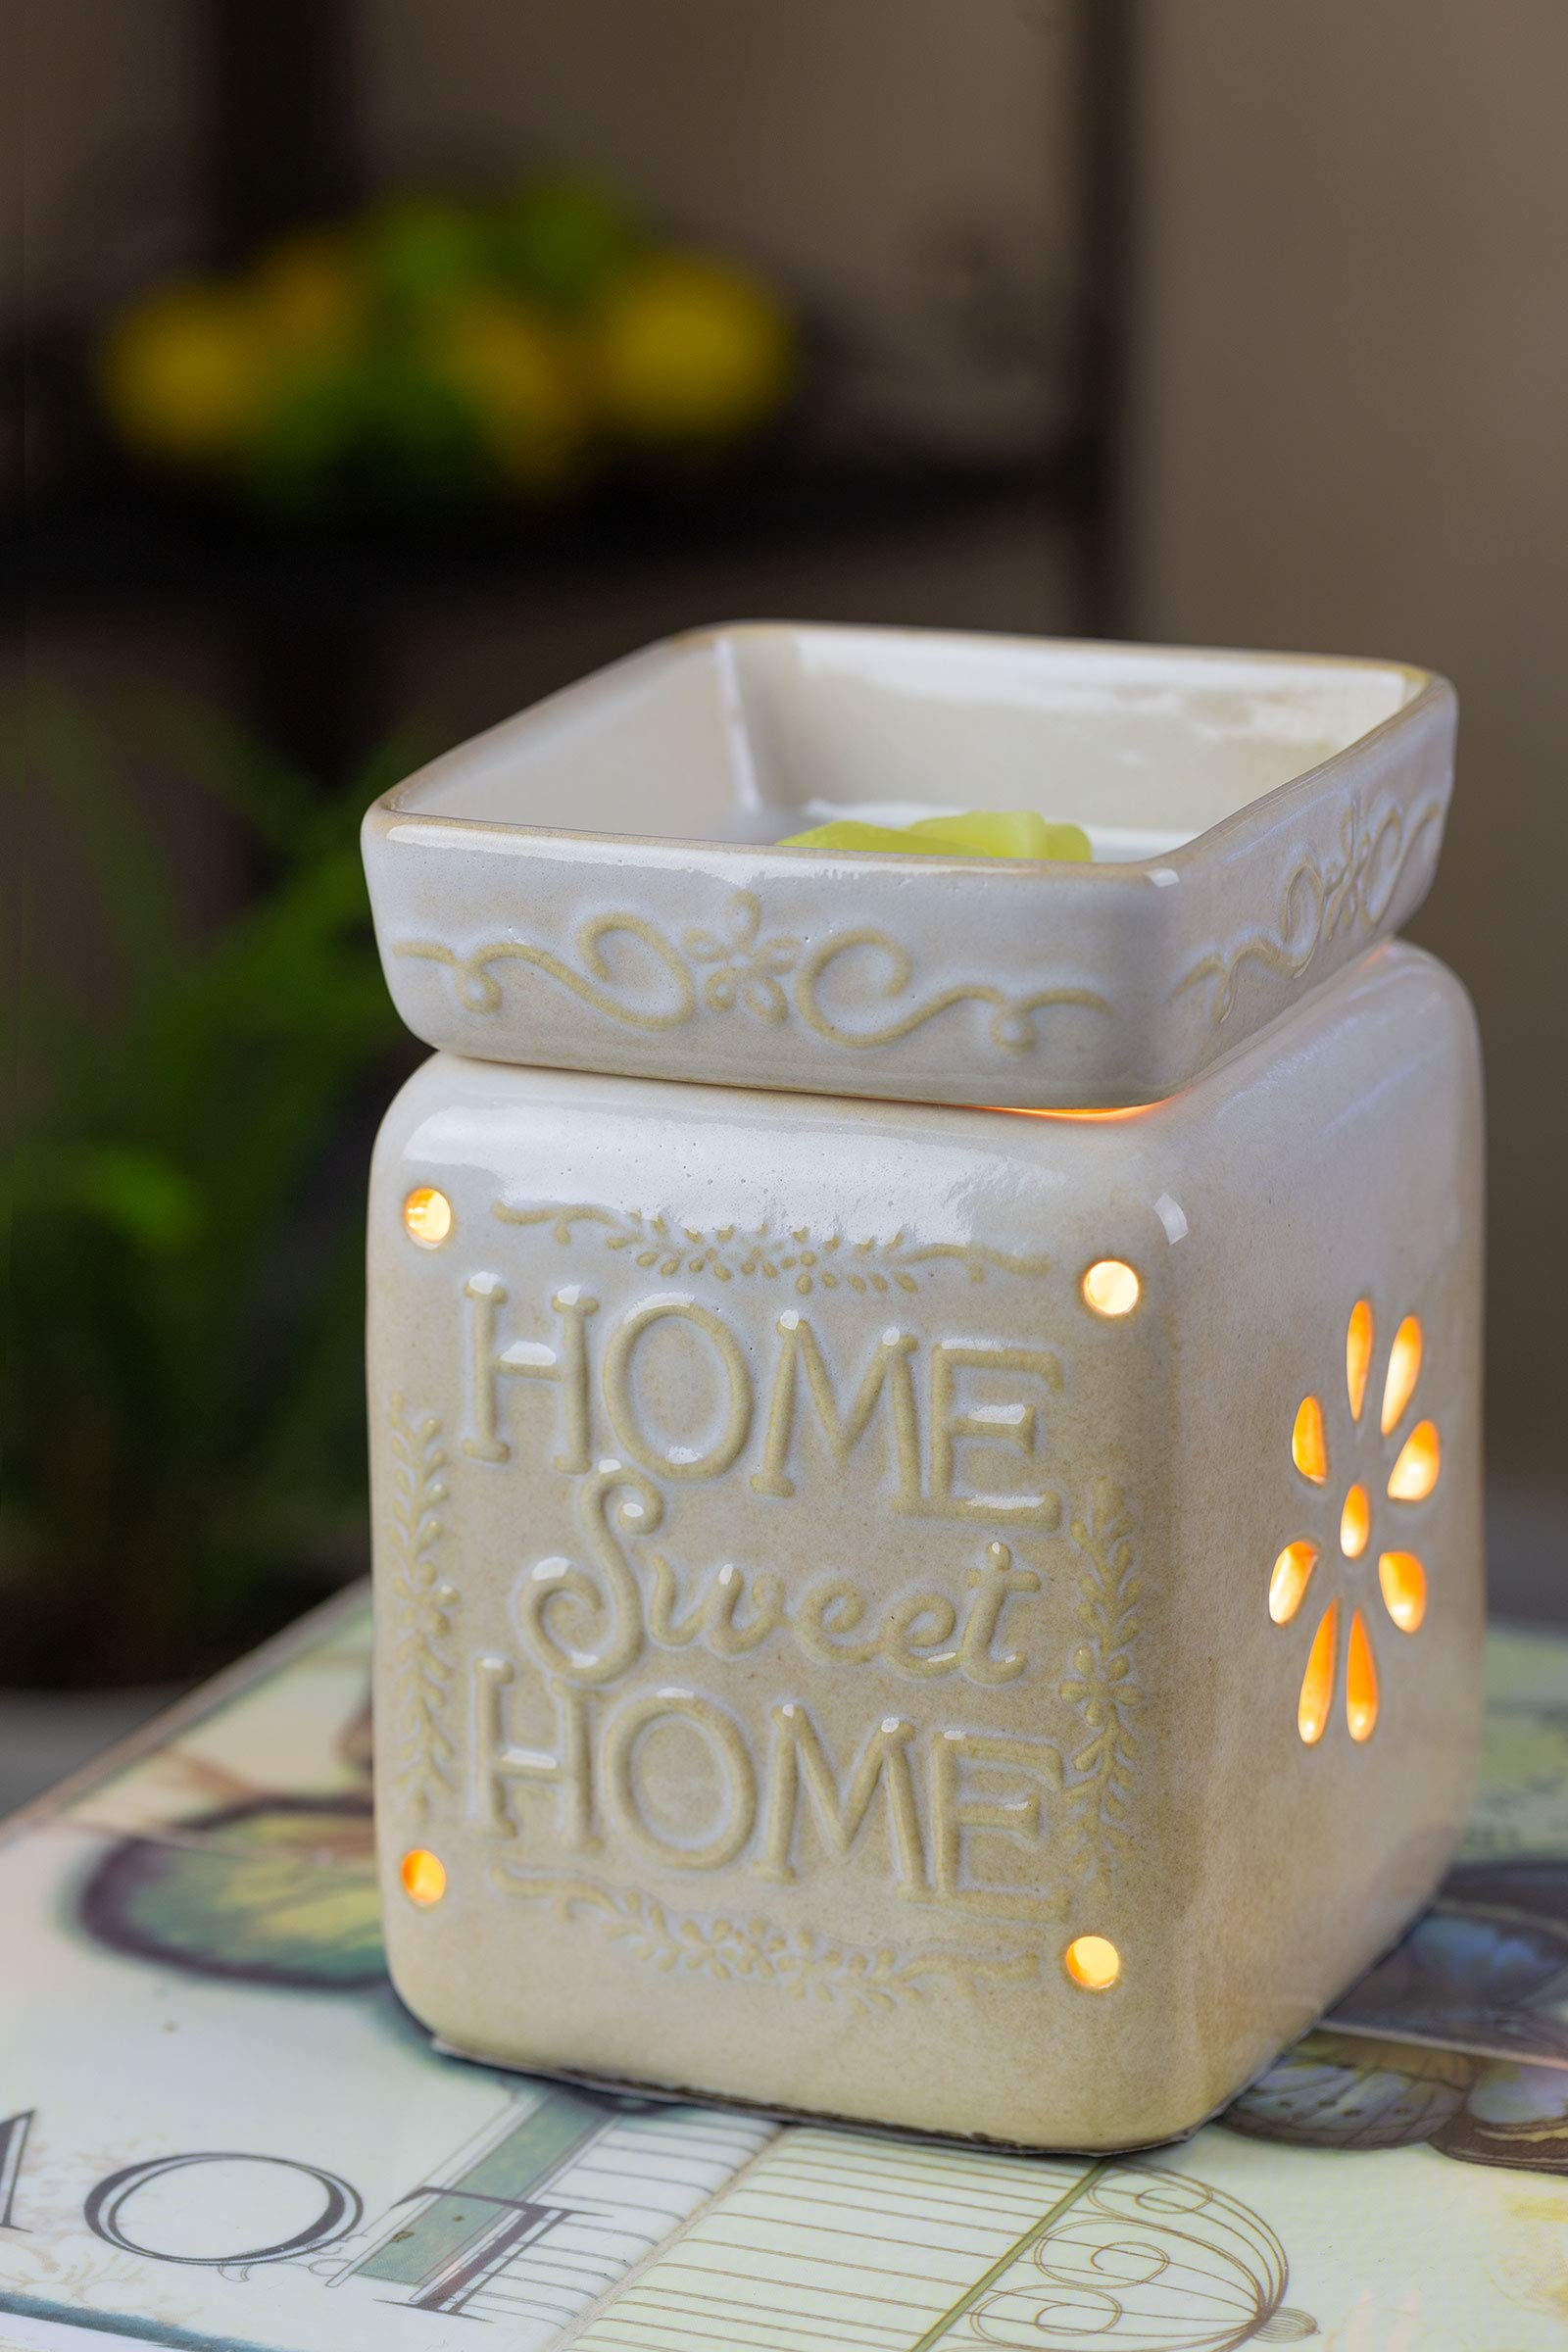 Ceramic Fragrance Warmer (Home Sweet Home) by VP Home (Image #3)